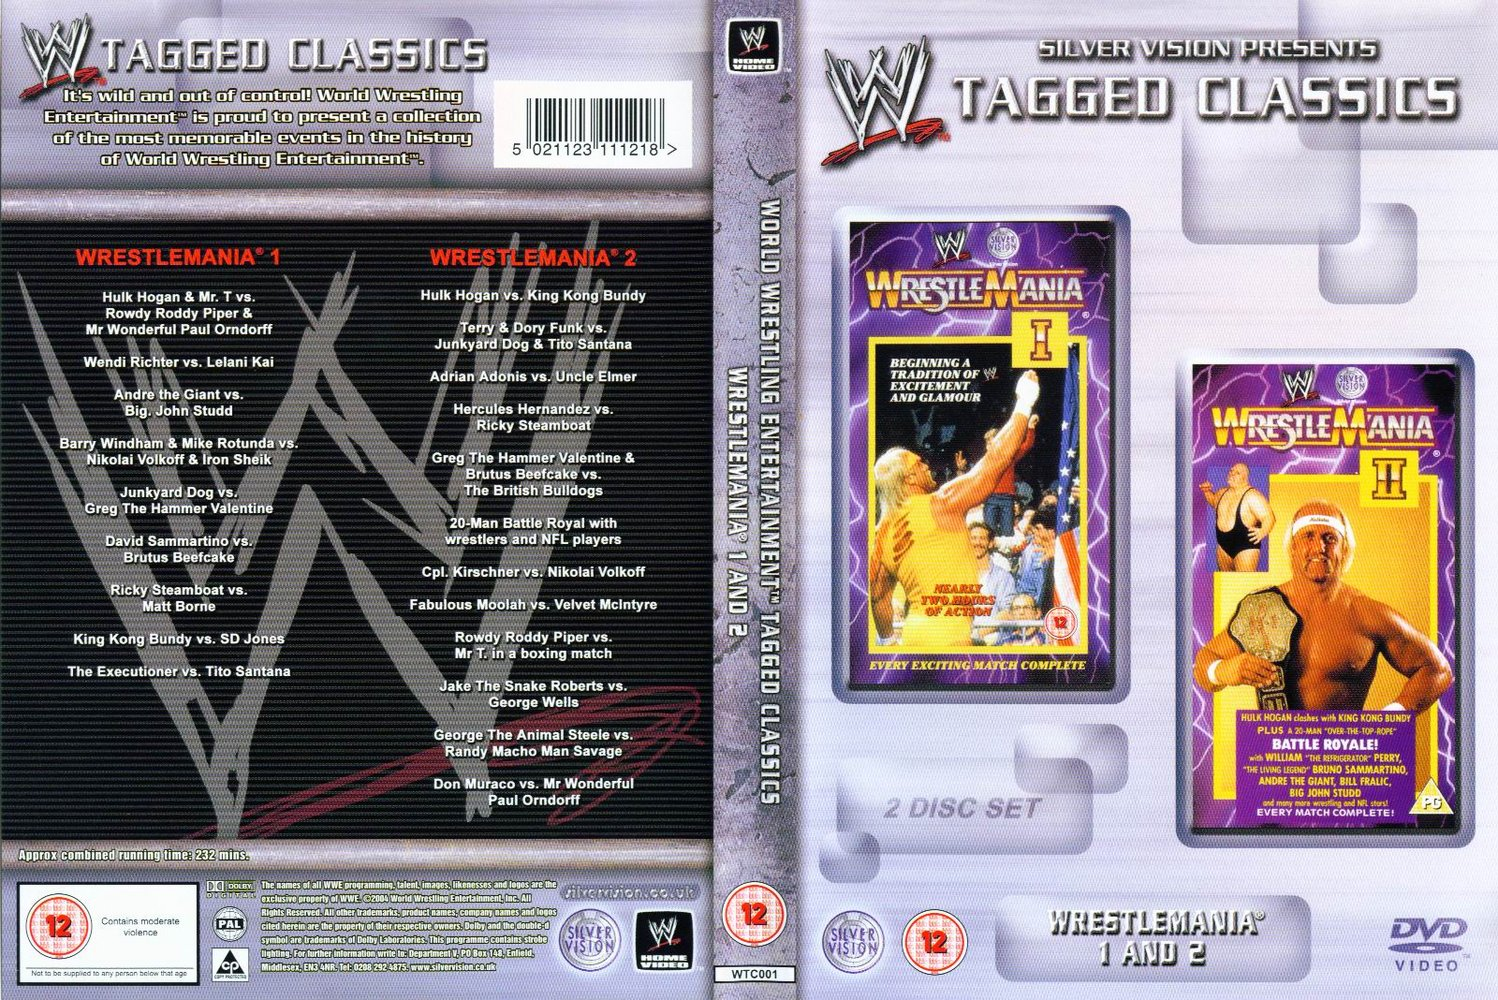 Wwe_Wrestlemania_1-2_Tagged_Classics-front